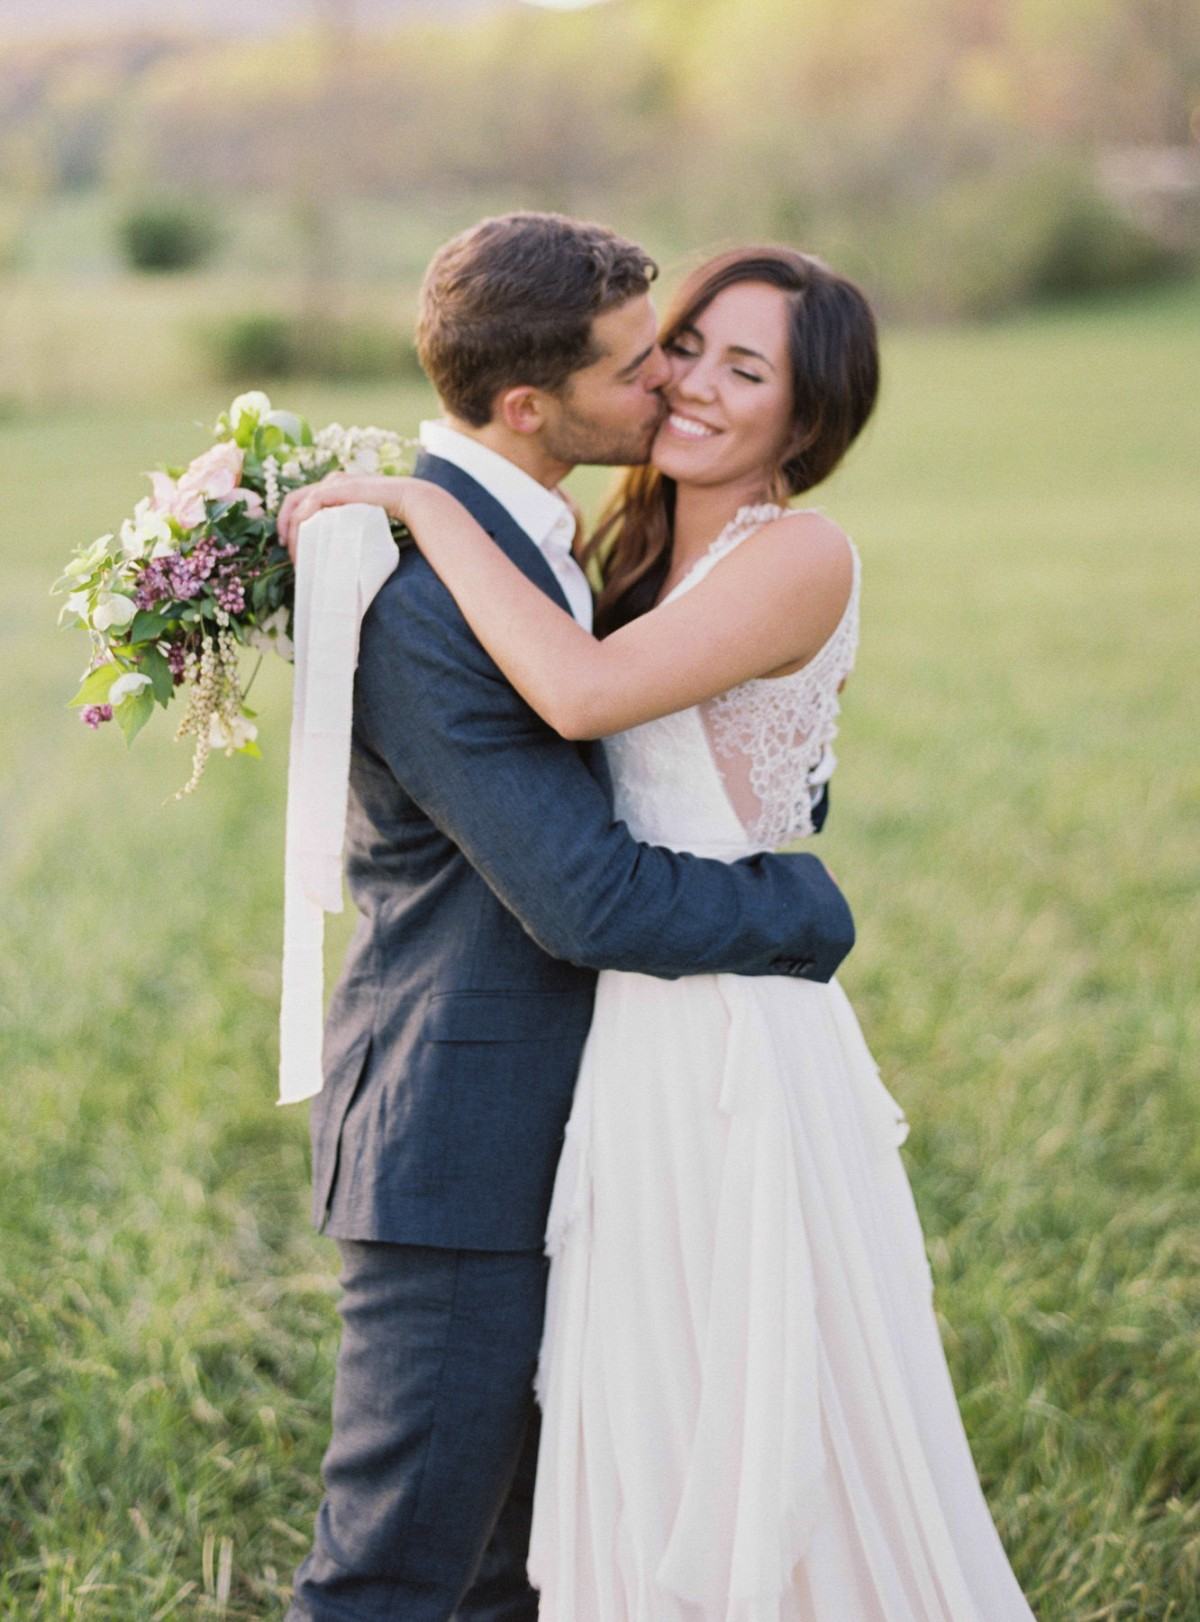 Natural, Organic Bride and Groom Portraits